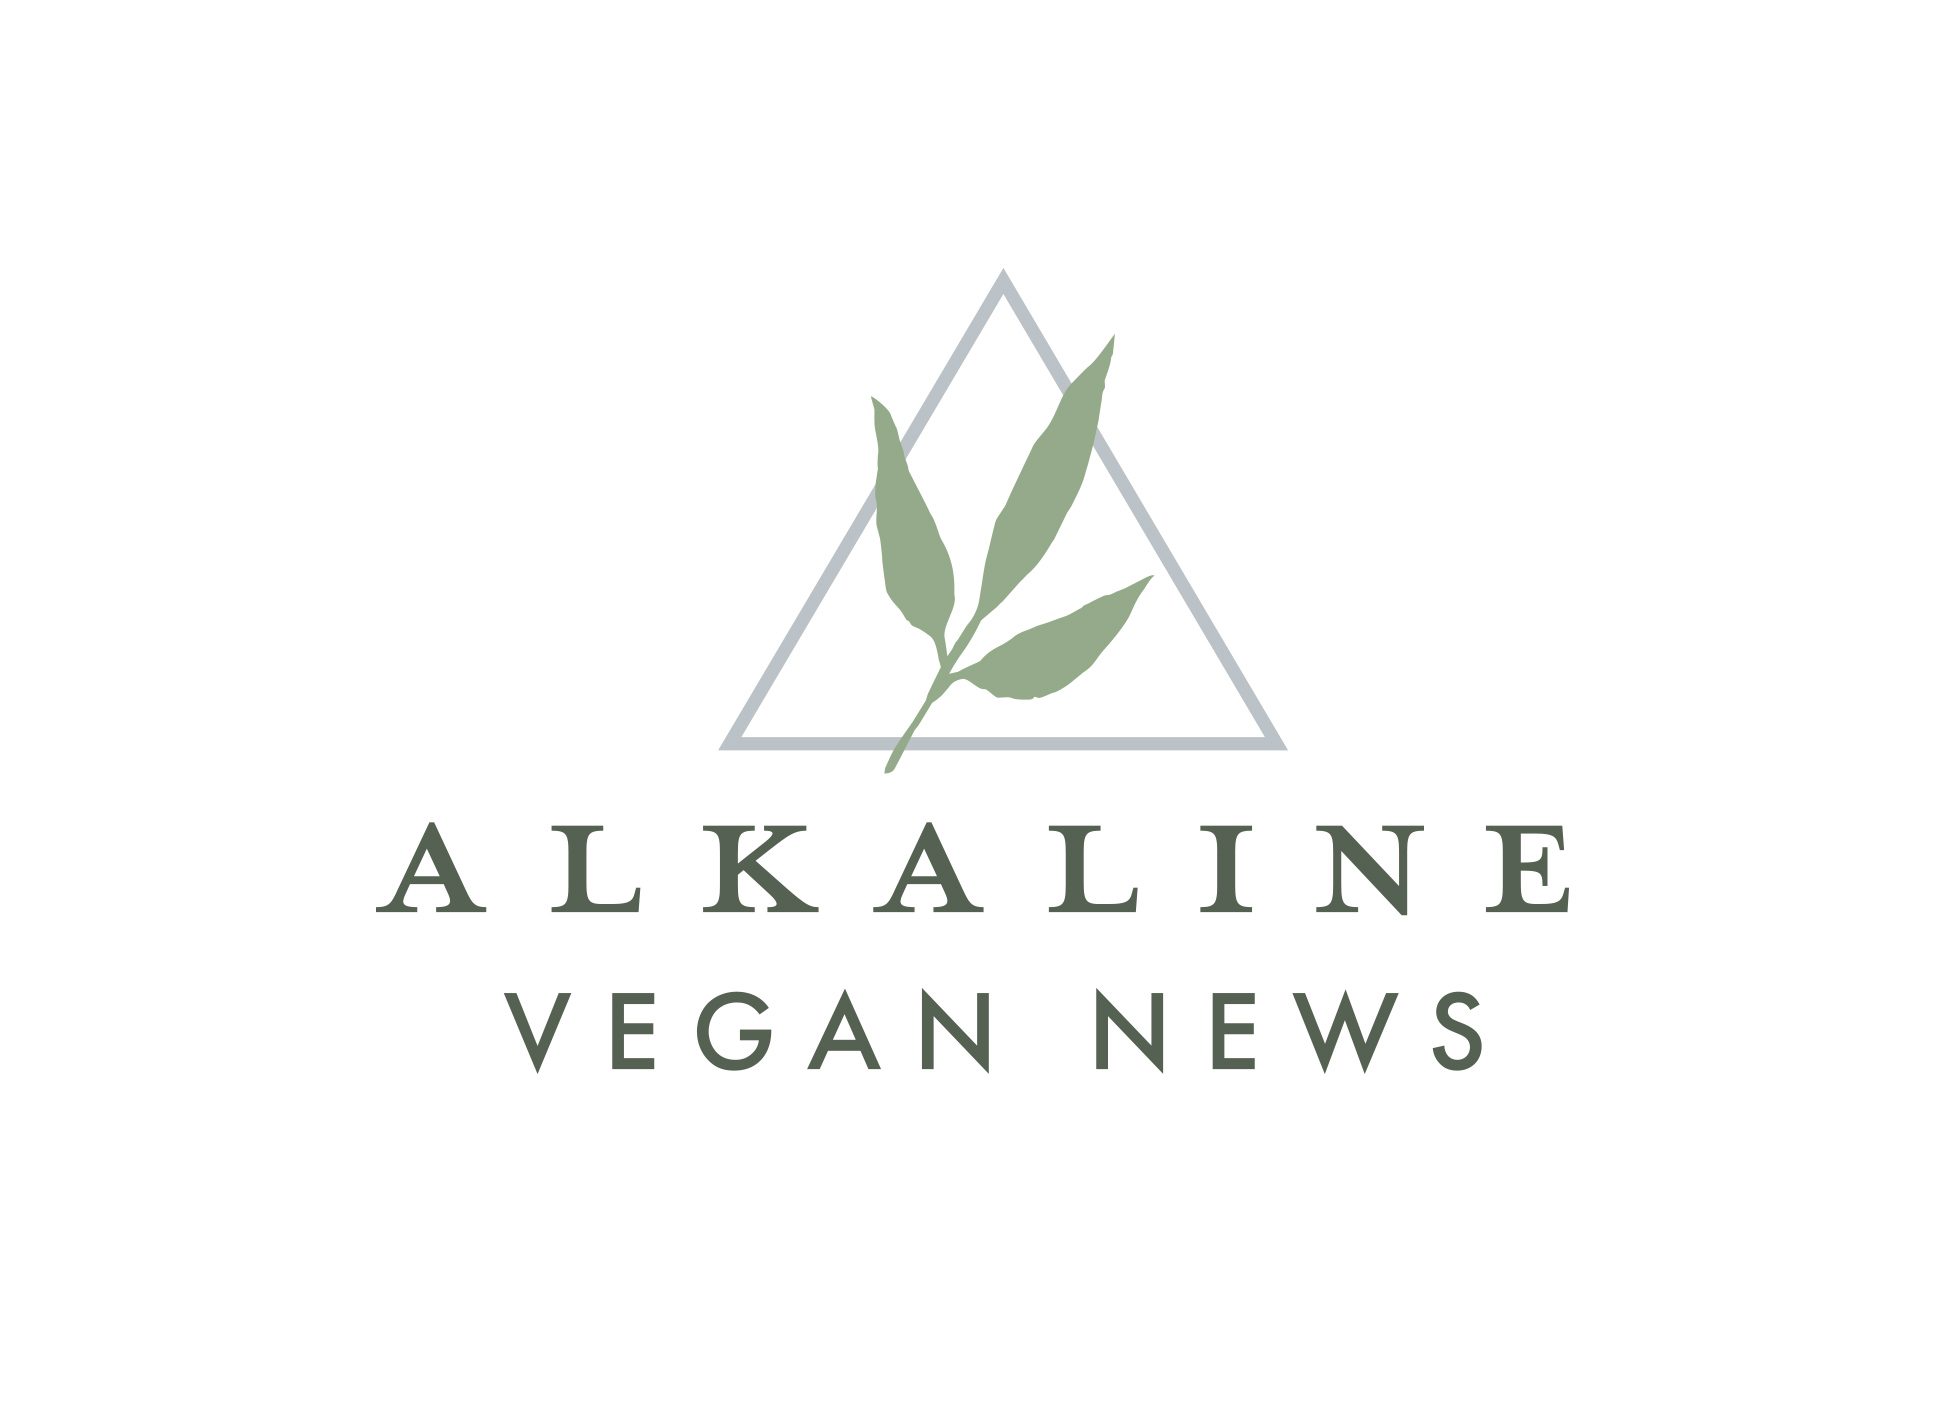 Alkaline Vegan News brand identity logo design using botanical and geometric elements with triangle and leaf above text.